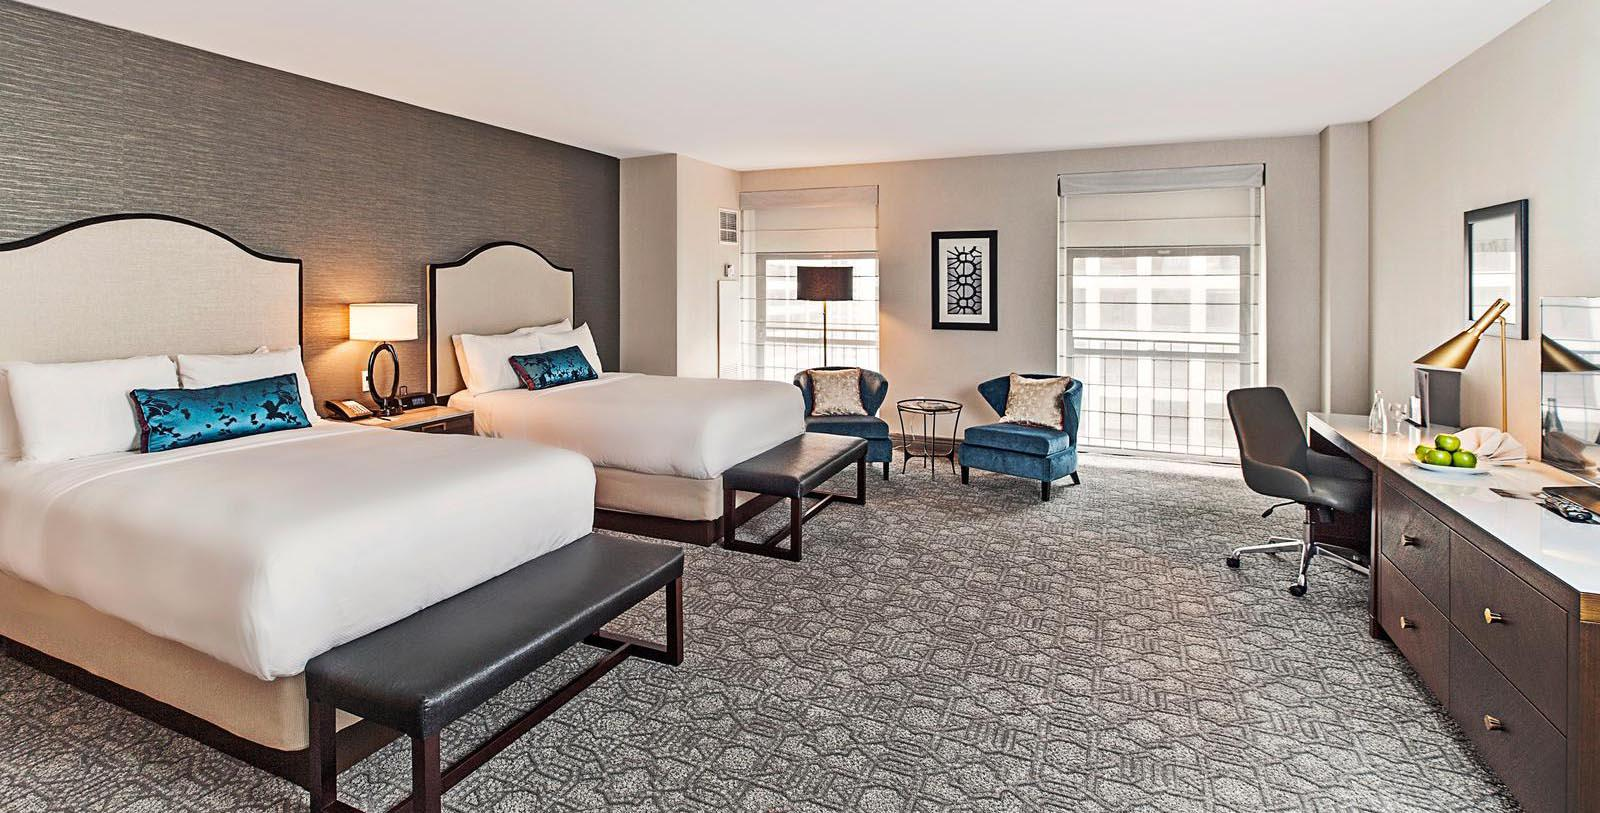 Image of Guestroom Interior, InterContinental Chicago Magnificent Mile in Chicago, Illinois, 1929, Member of Historic Hotels of America, Accommodations